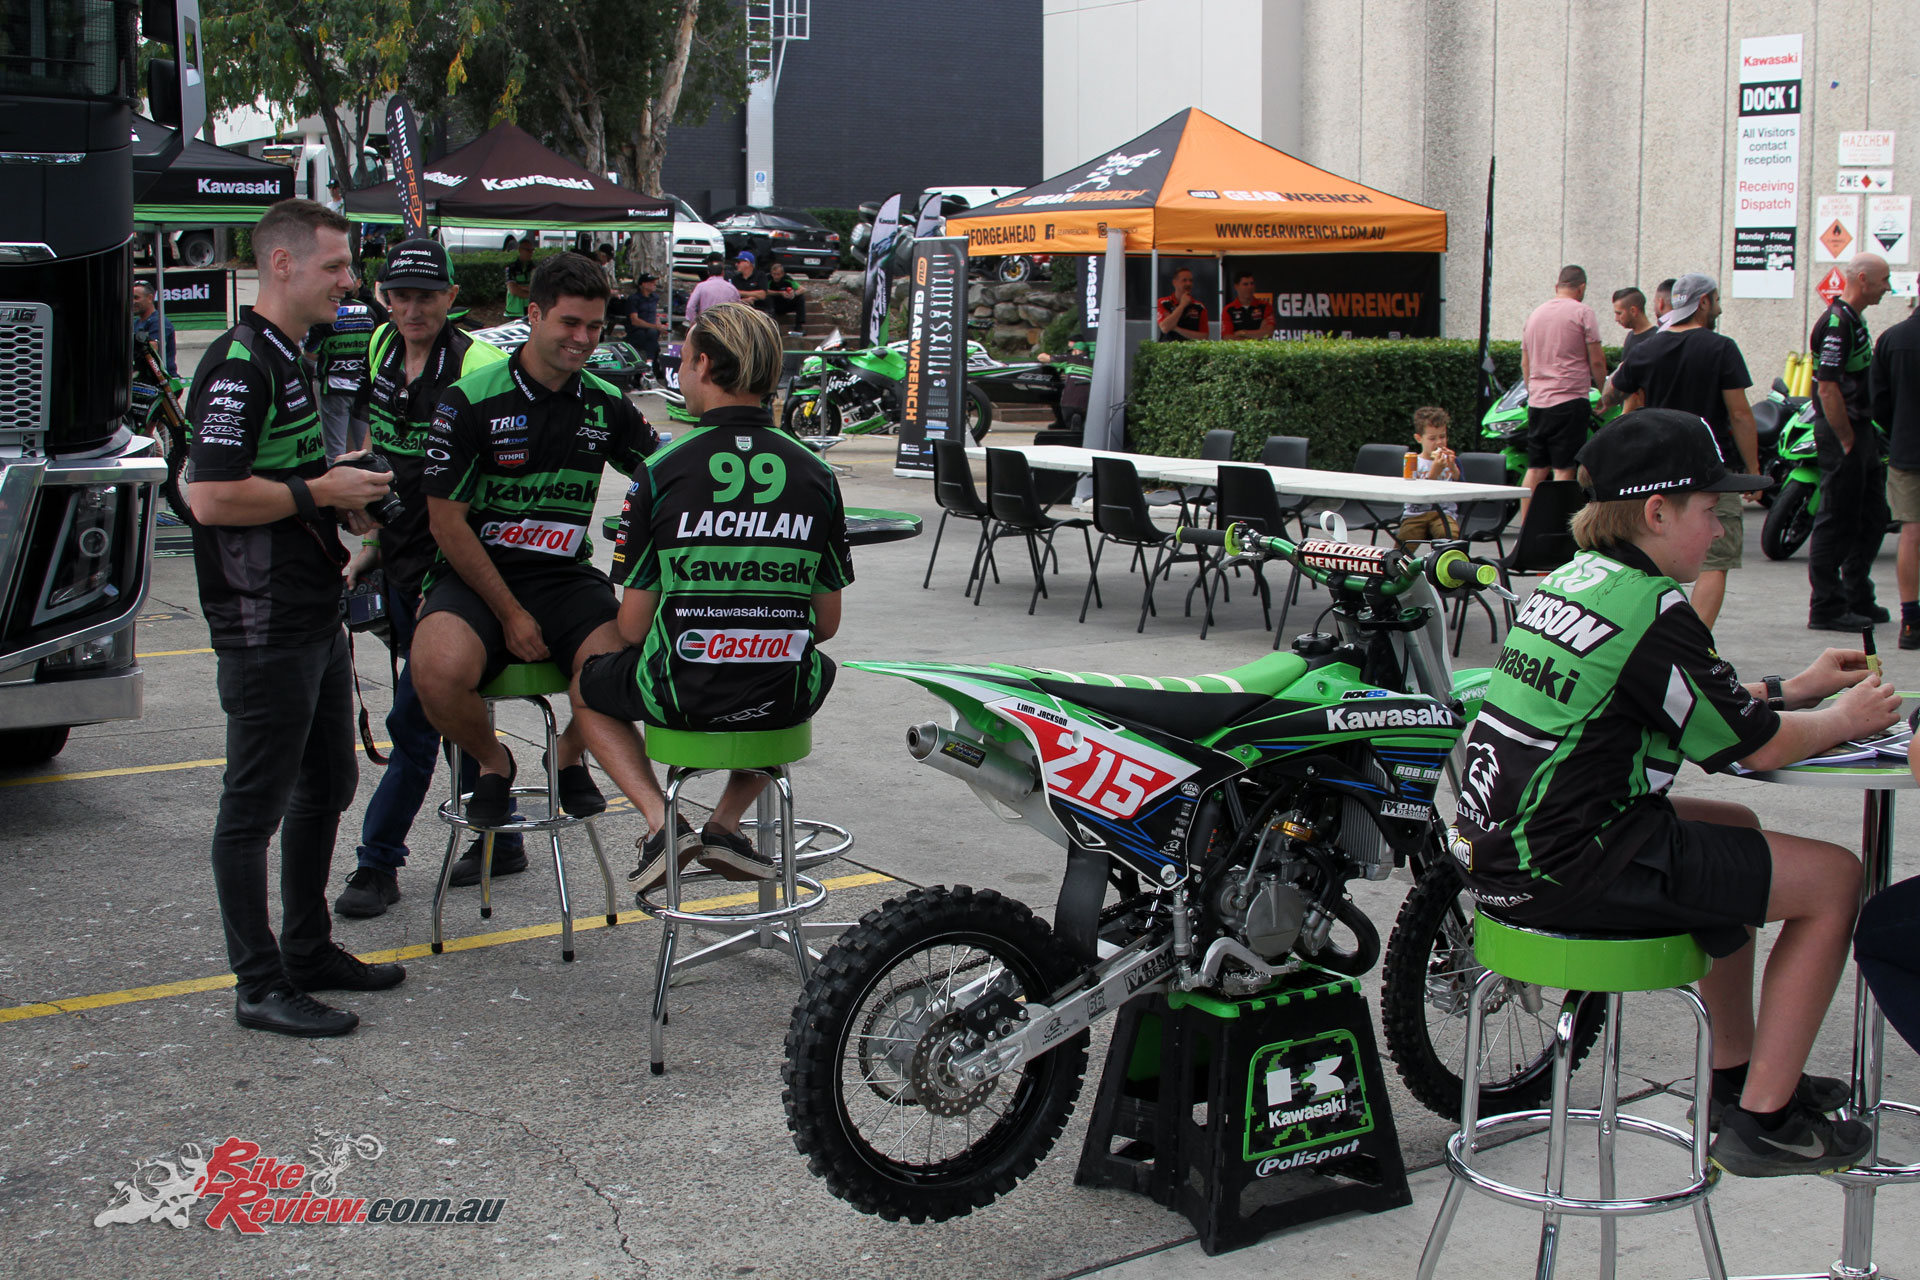 The Kawasaki supported rider meet was held at their Sydney HQ